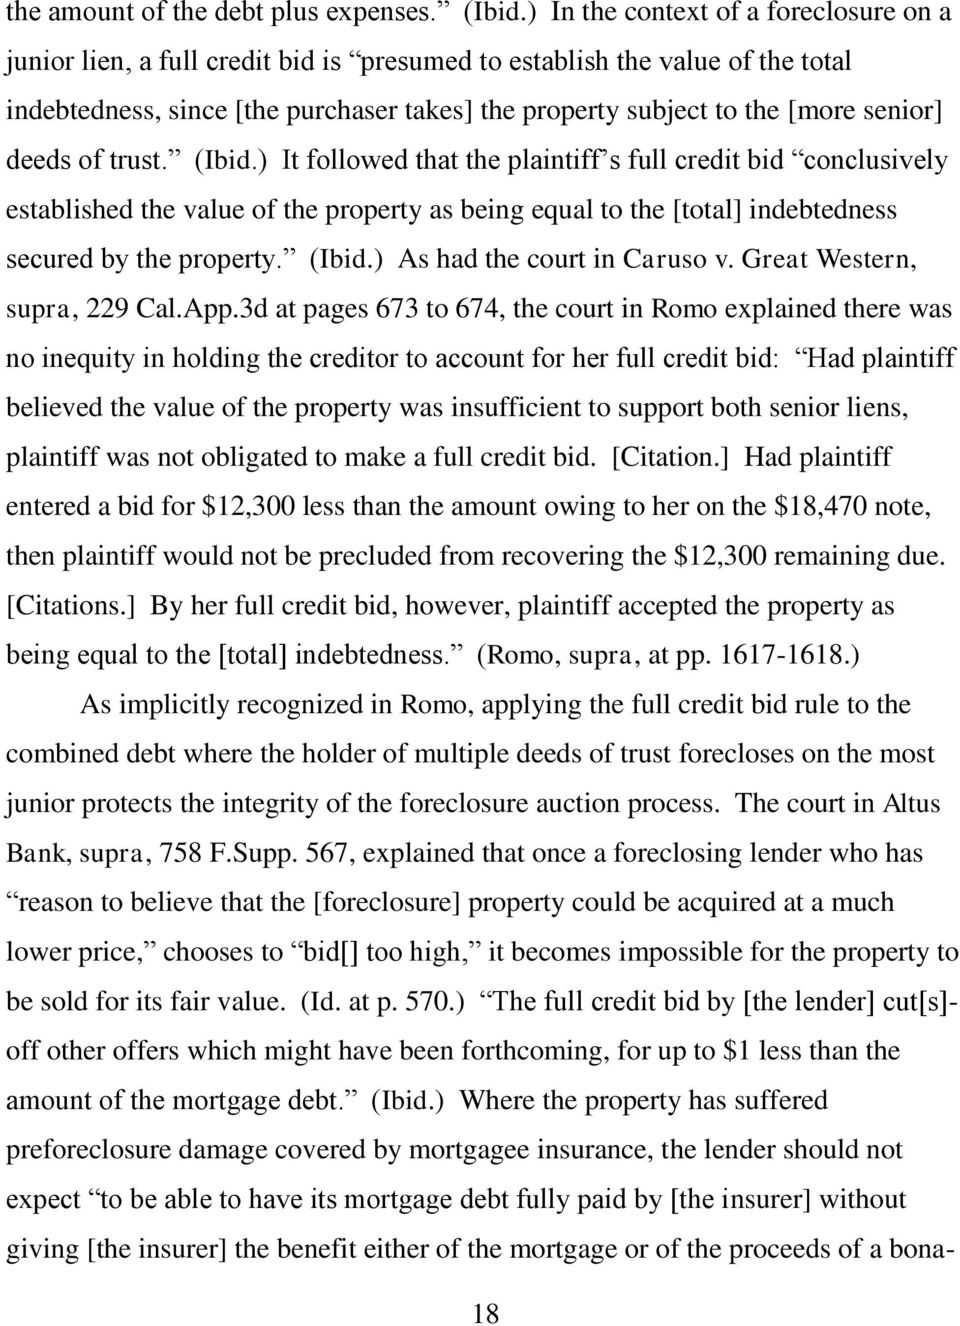 senior] deeds of trust. (Ibid.) It followed that the plaintiff s full credit bid conclusively established the value of the property as being equal to the [total] indebtedness secured by the property.